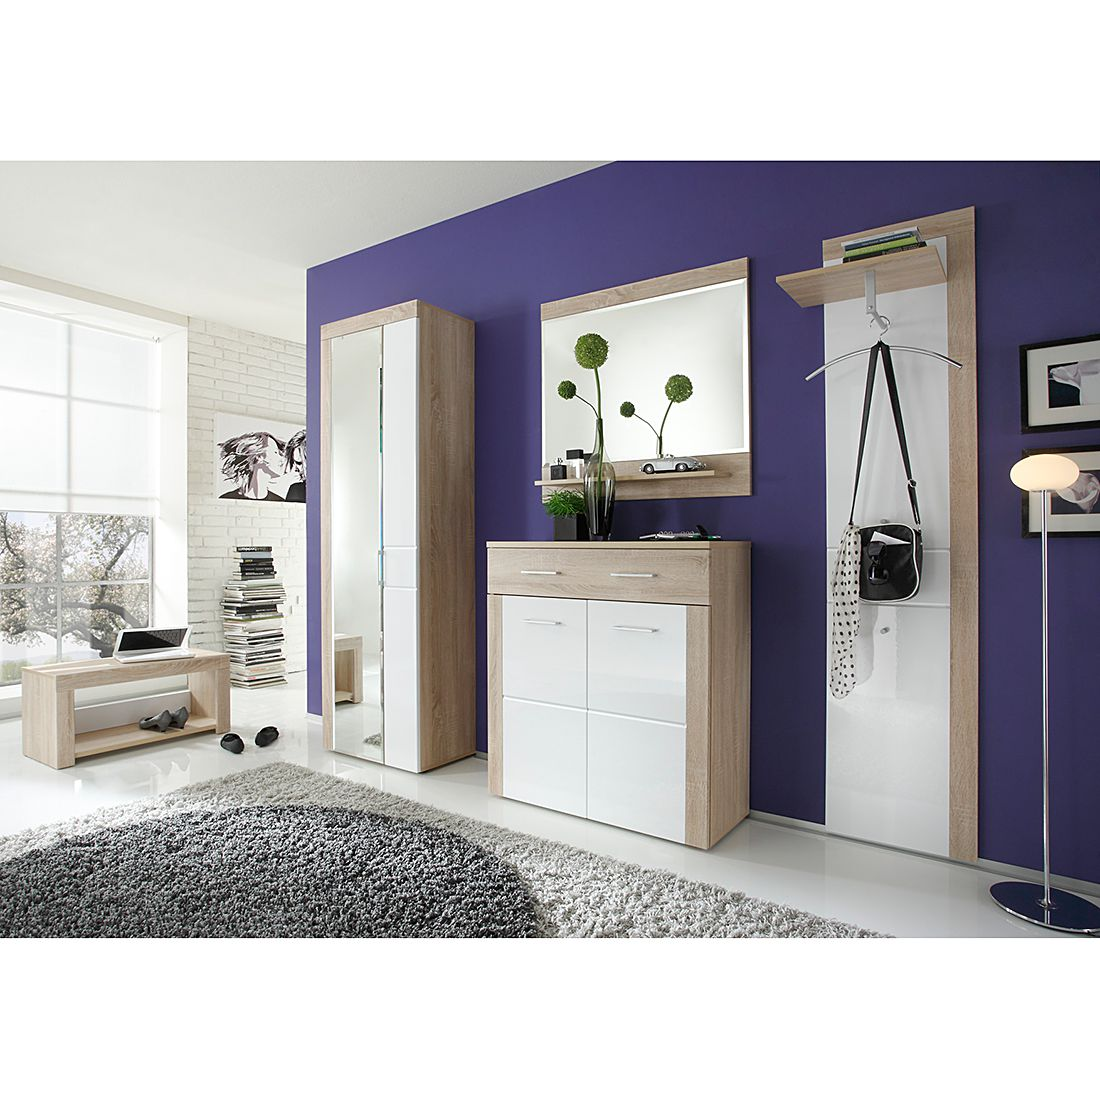 garderobe aalborg 5 teilig eiche dekor hochglanz. Black Bedroom Furniture Sets. Home Design Ideas